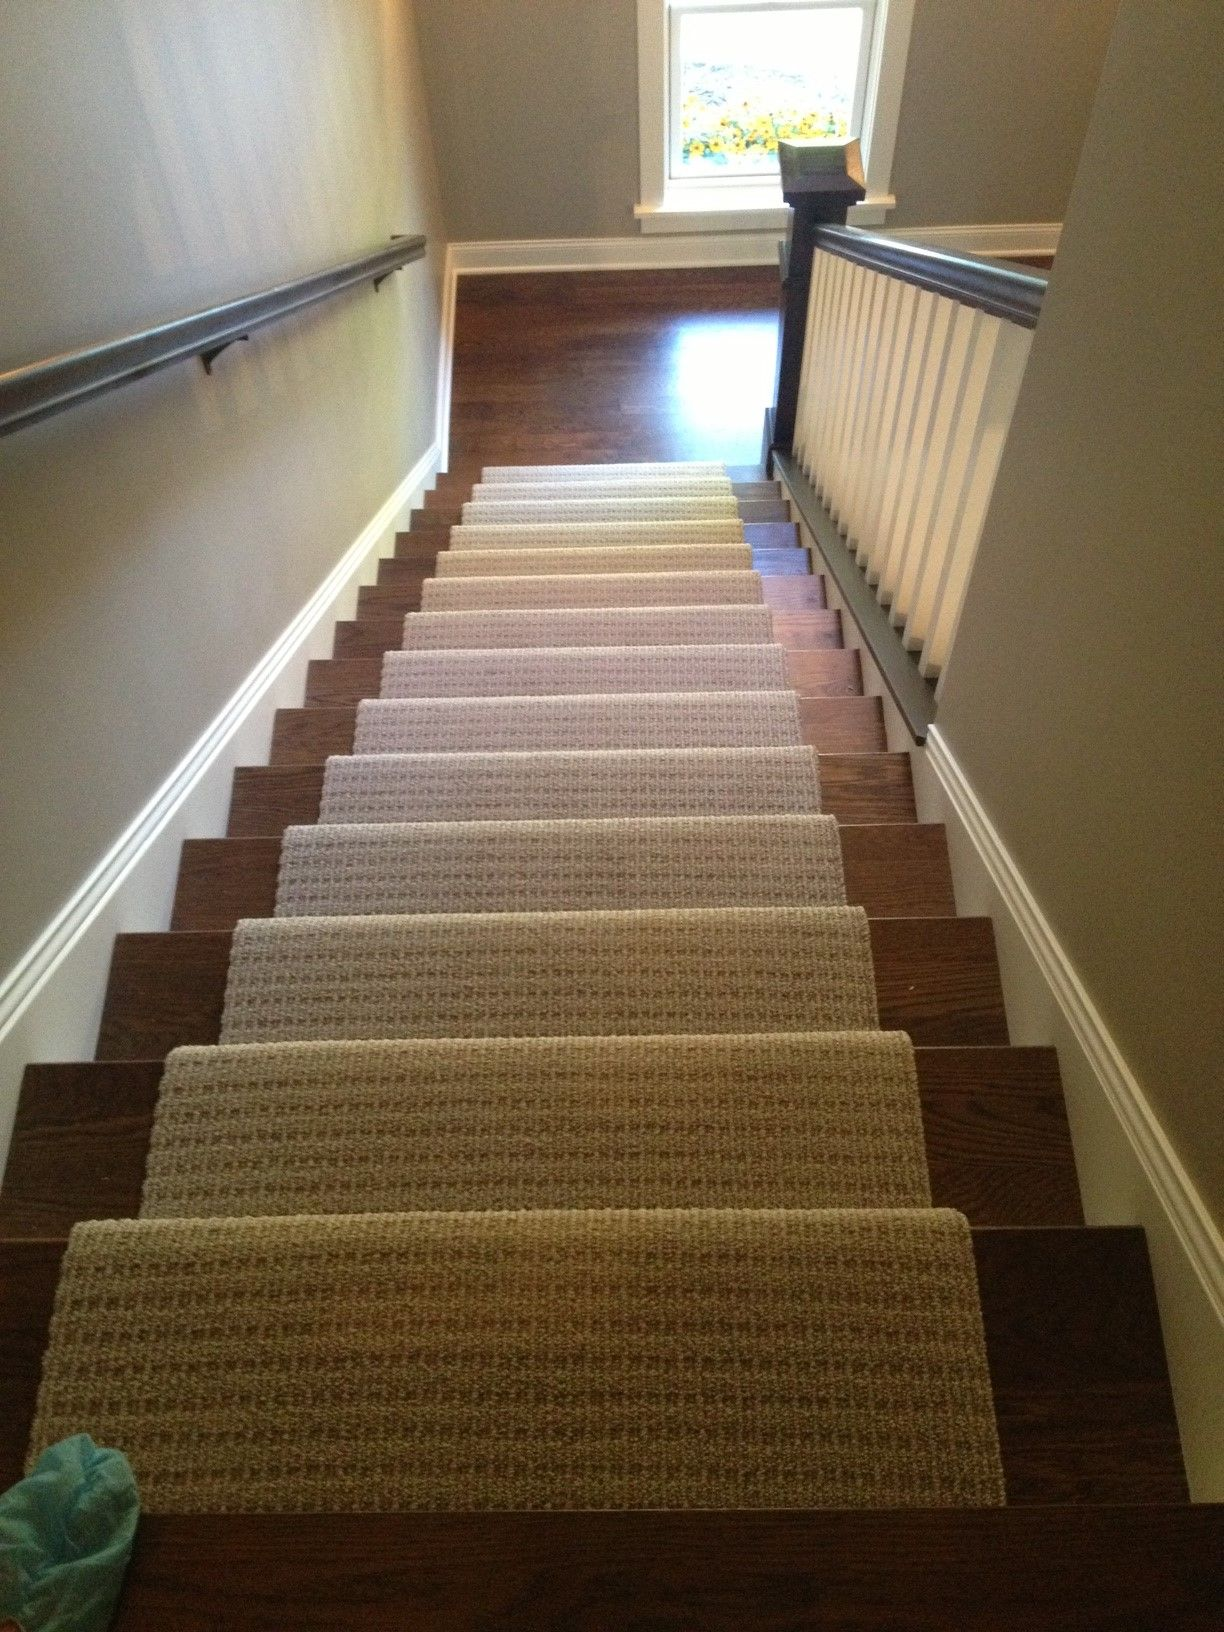 Wood And Carpet Runner Stairs For My Upstairs Living Room Dining Room Pinterest Woods